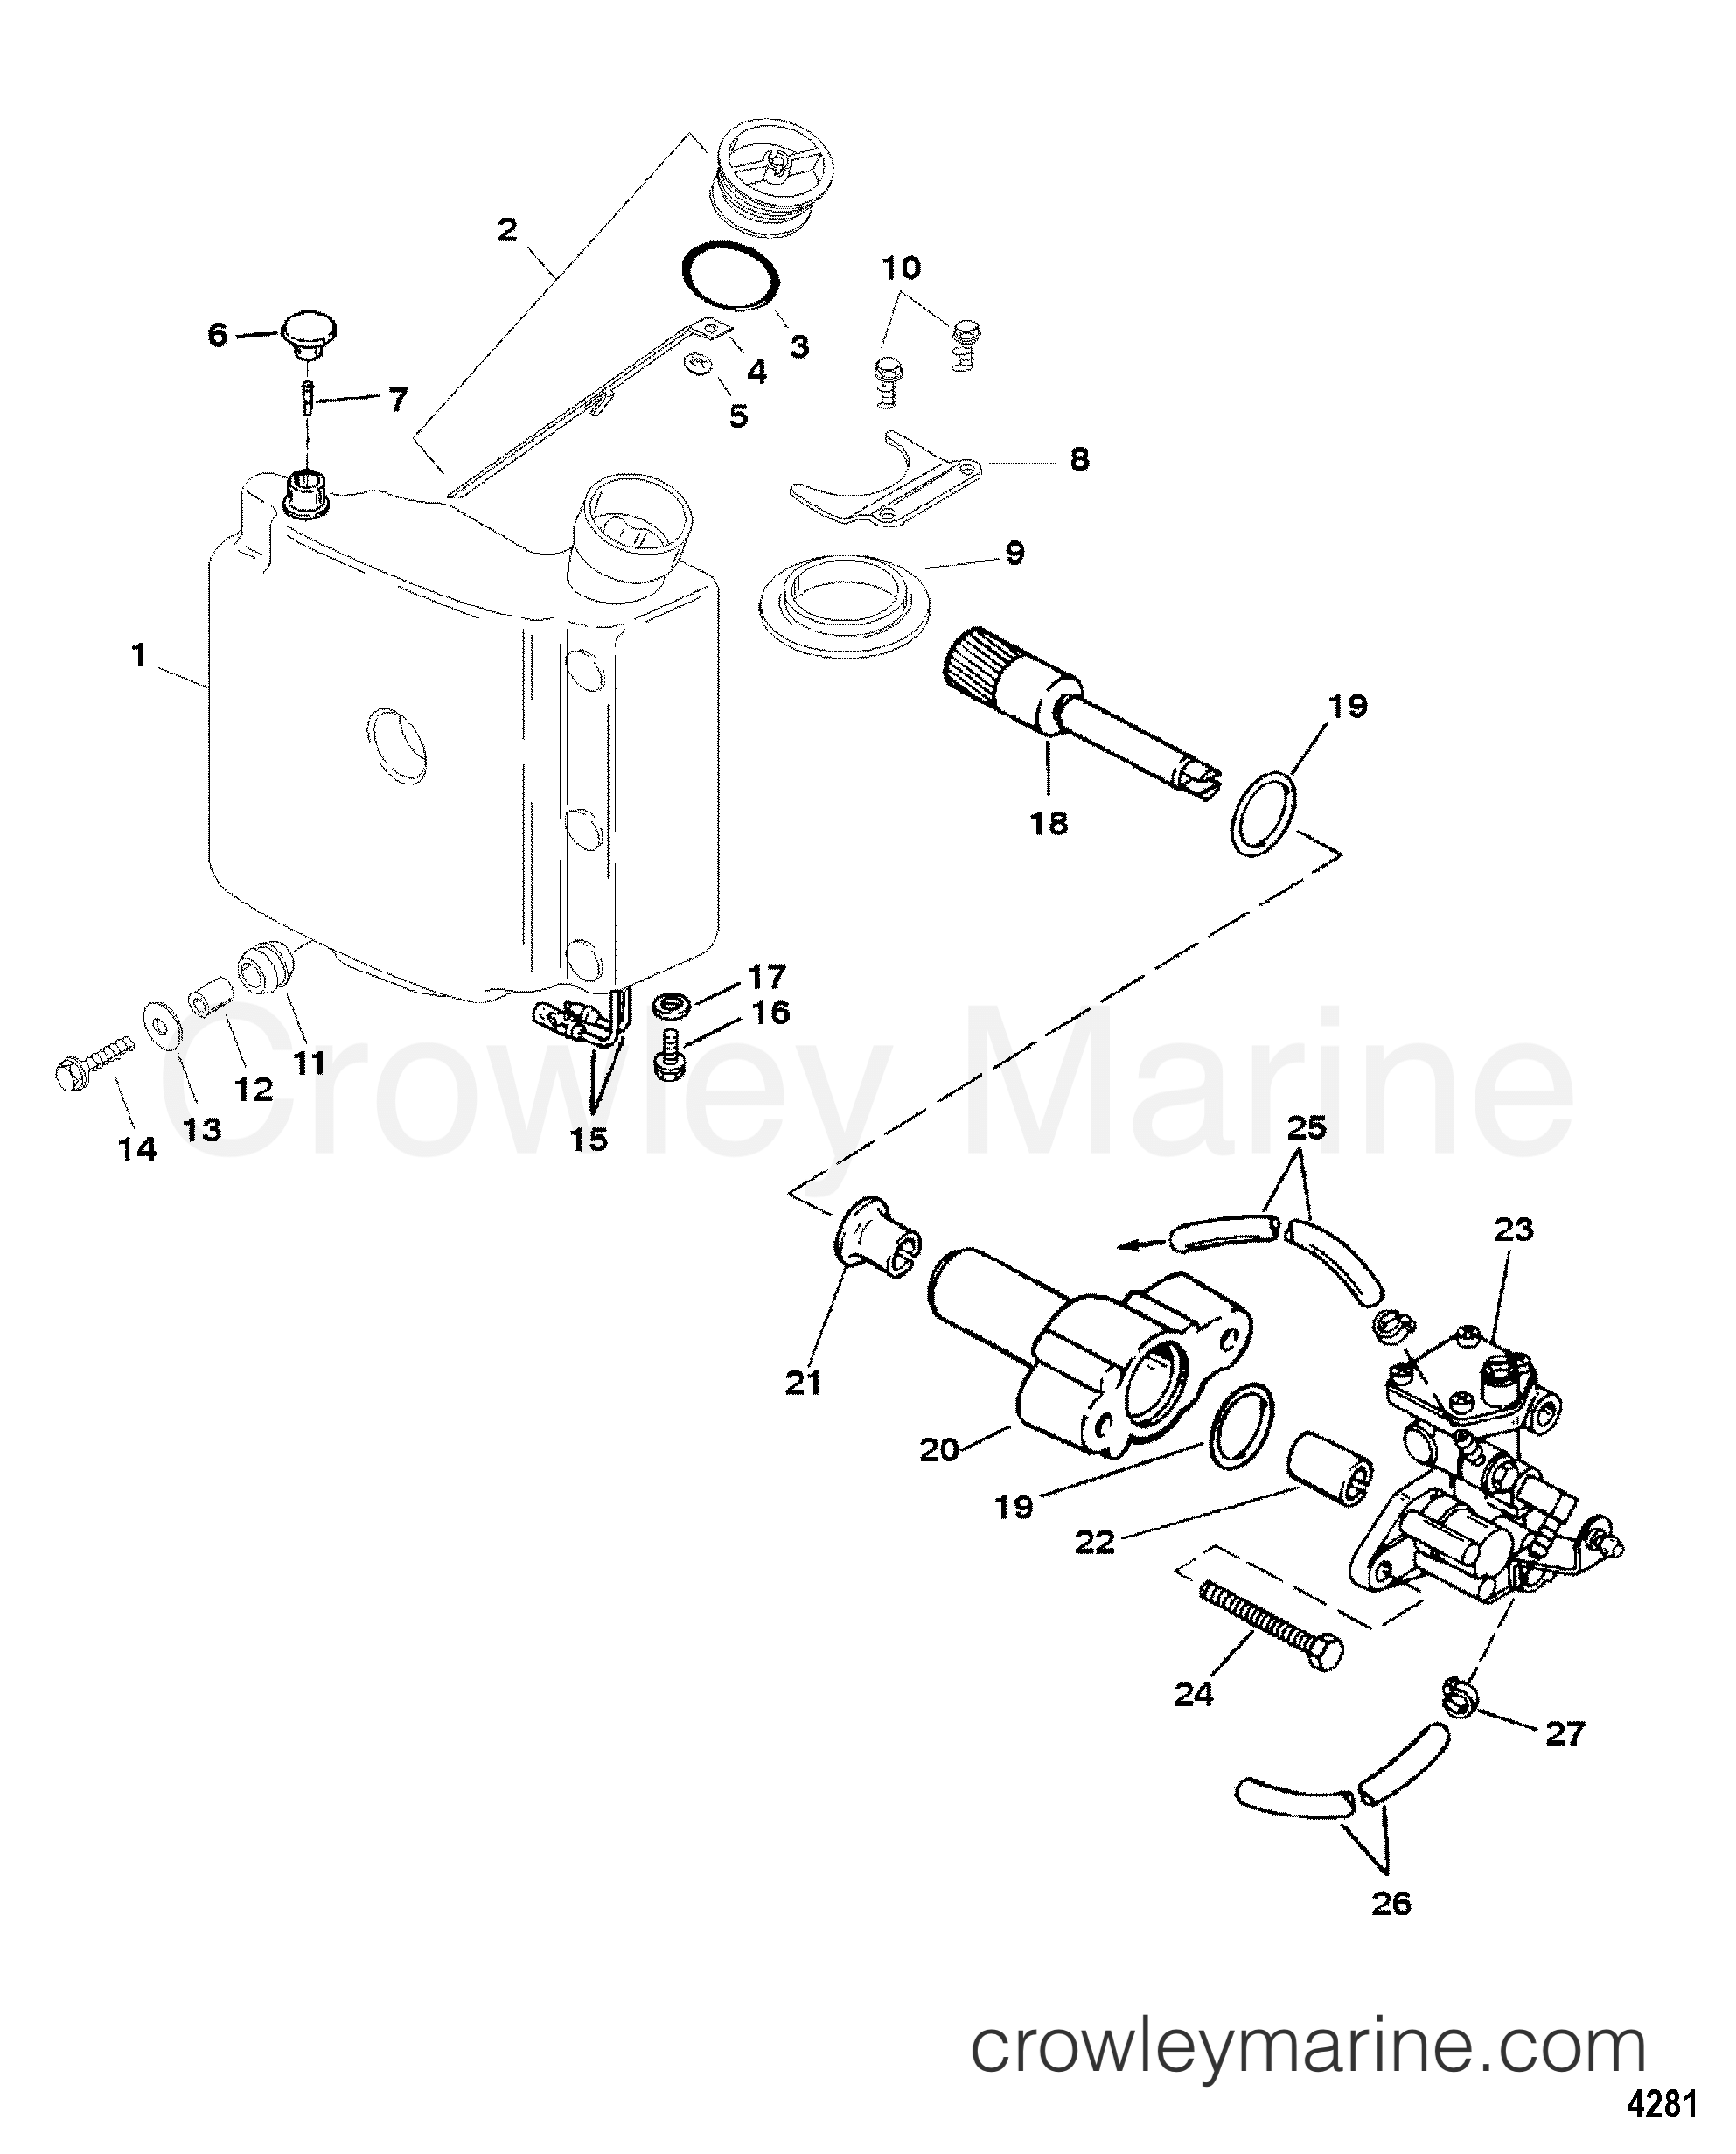 Serial Range Mercury Outboard 80 JET - 0P017000 THRU 0P325499 [BEL] - OIL INJECTION COMPONENTS section